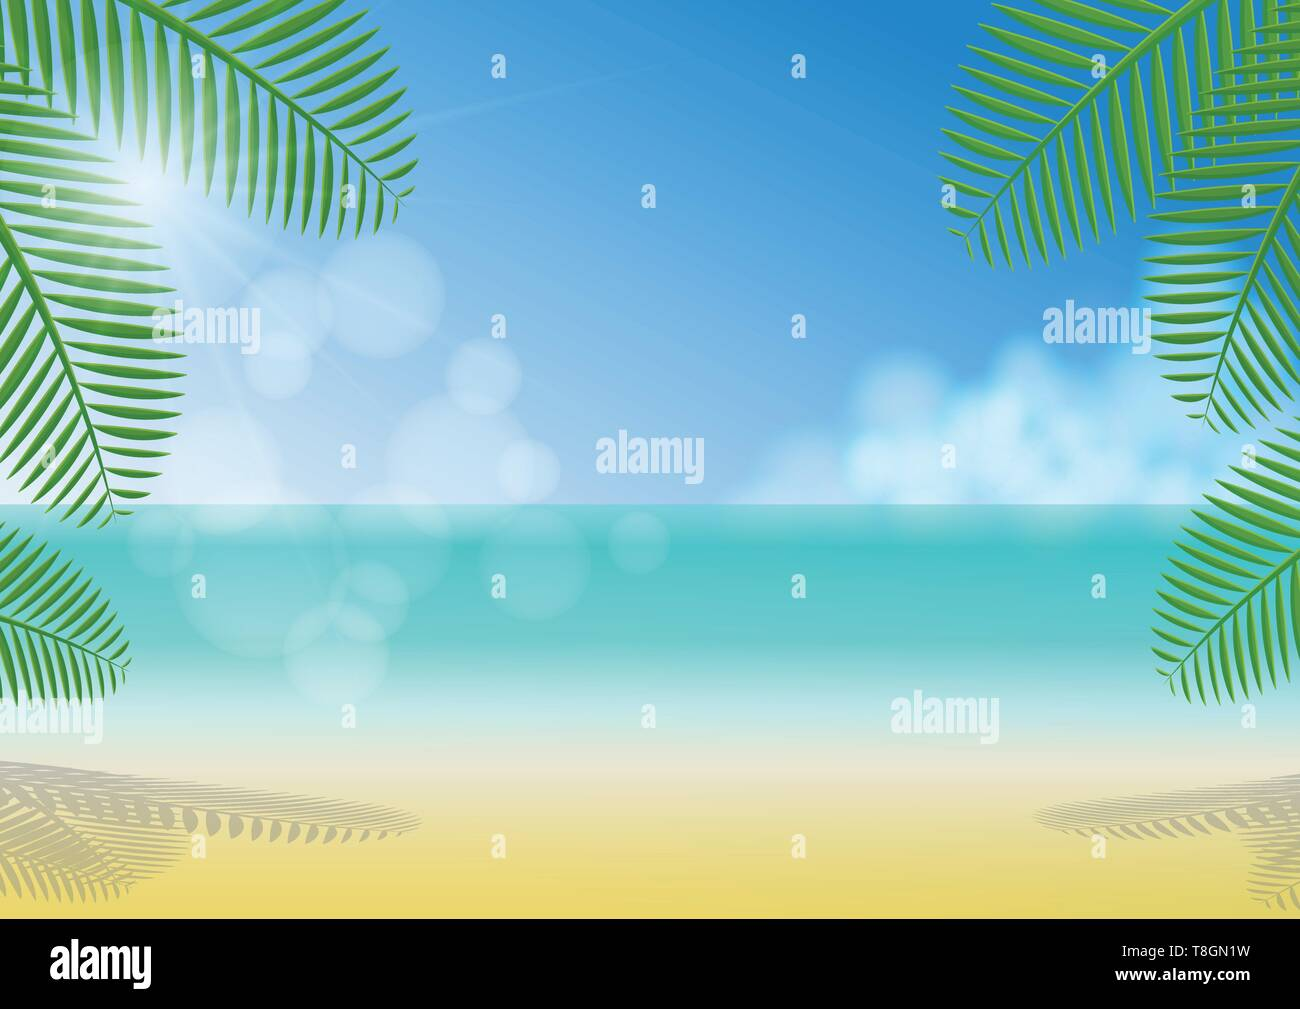 Sunny day under coconut trees shade on the beach, sea, clouds and clear blue sky background - Stock Vector